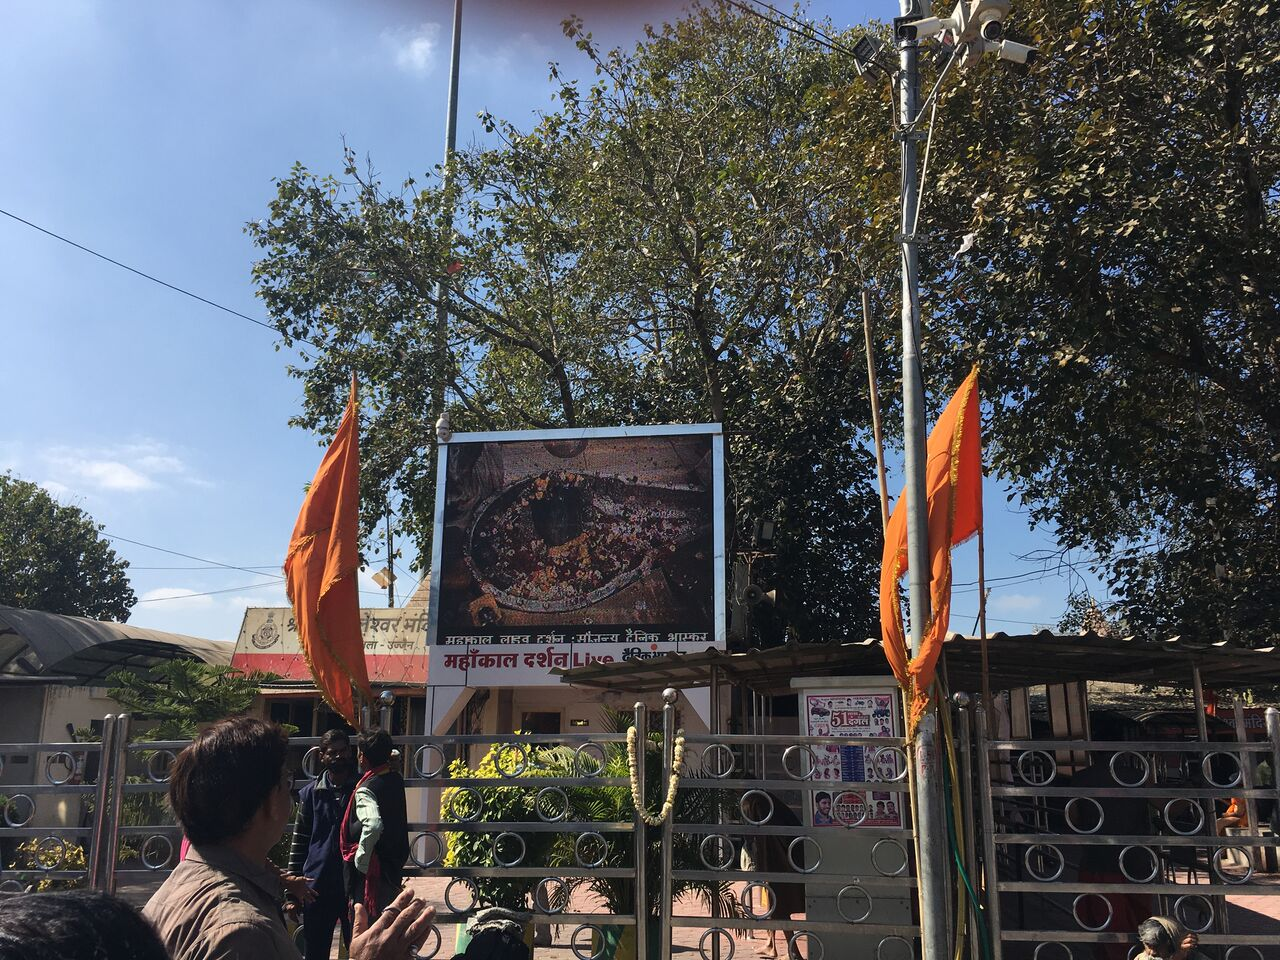 Live broadcast of Puja from the shrine at Mahakal Temple, Ujjain